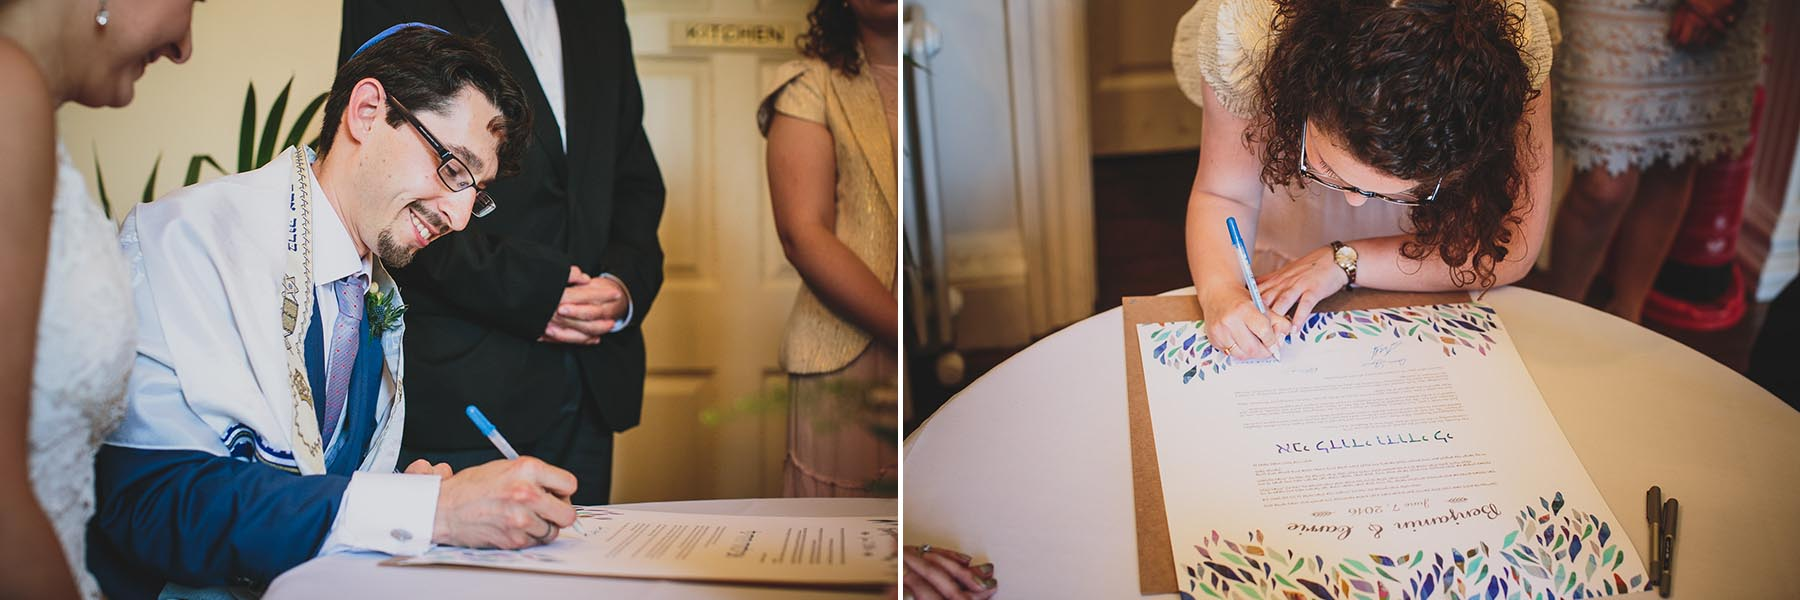 Stanmer-House-Wedding-Photography-Fazackarley-060